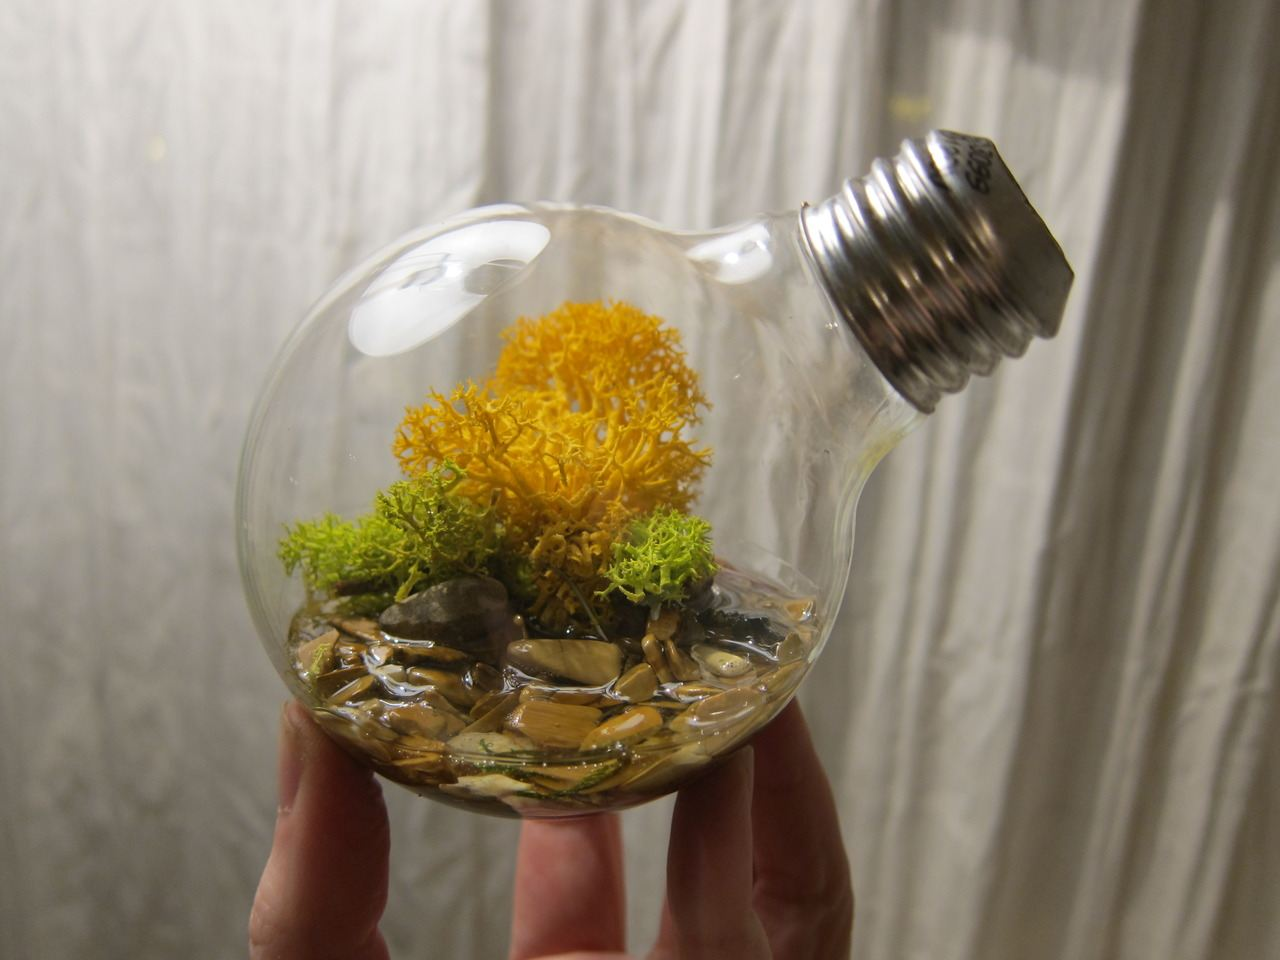 http://unnatural.ru/wp-content/gallery/light-bulb-terrarium-4/light-bulb-terrarium-4_1.jpg